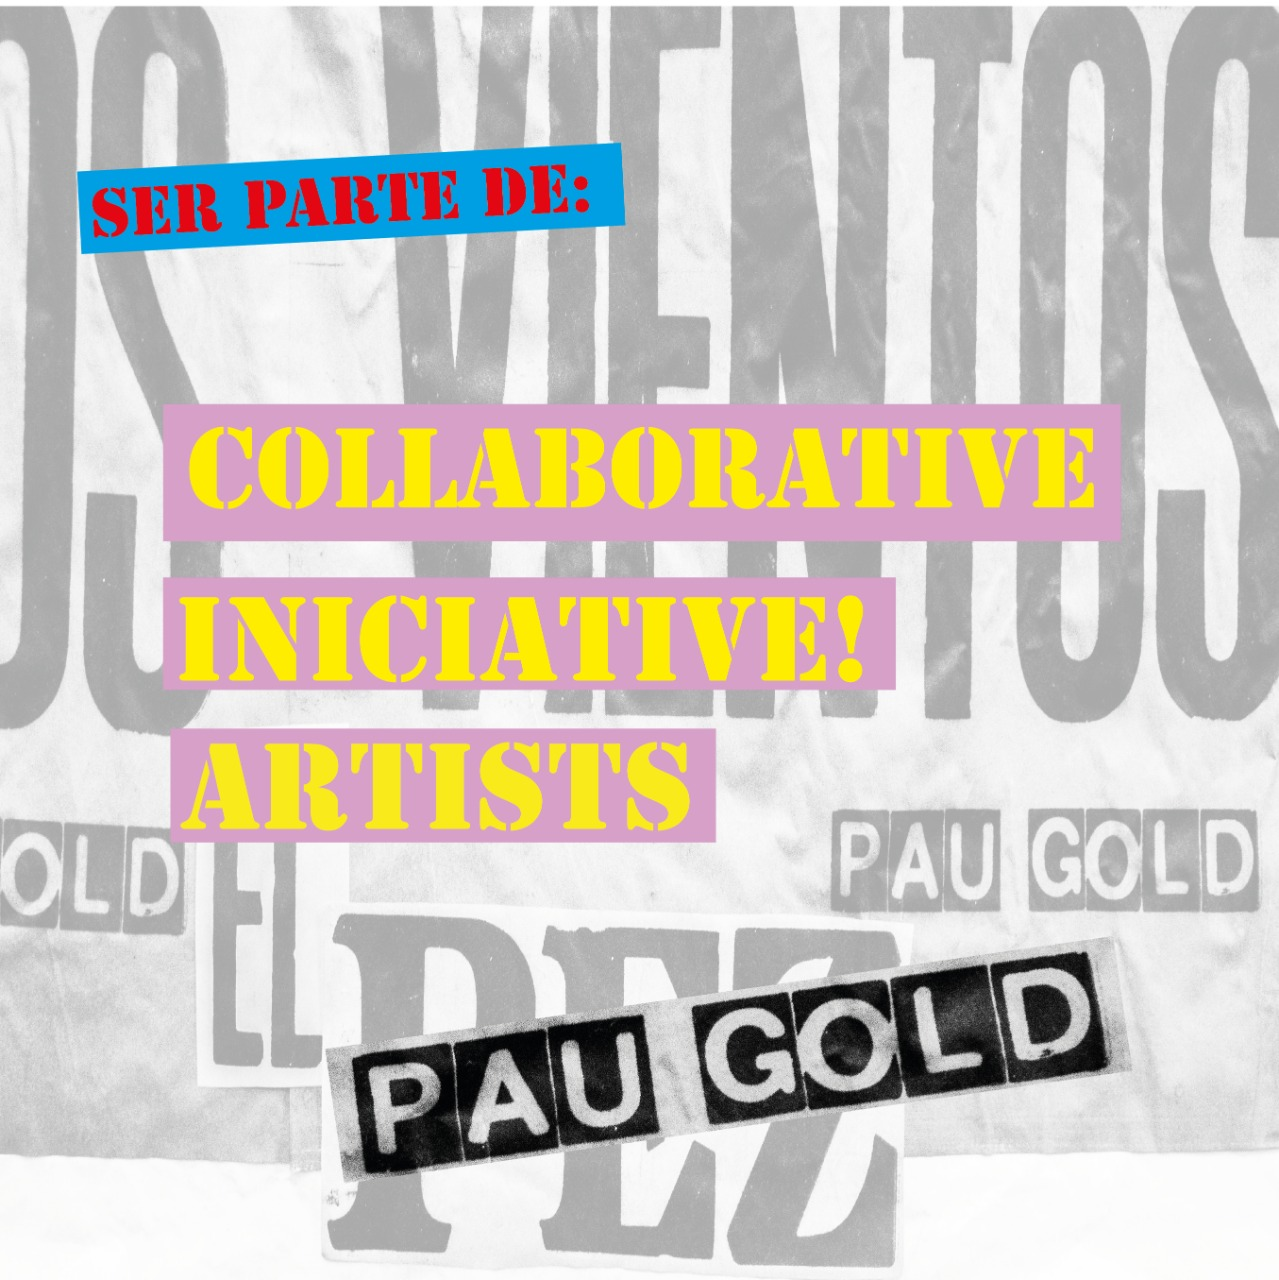 Collaborative Iniciative Artist